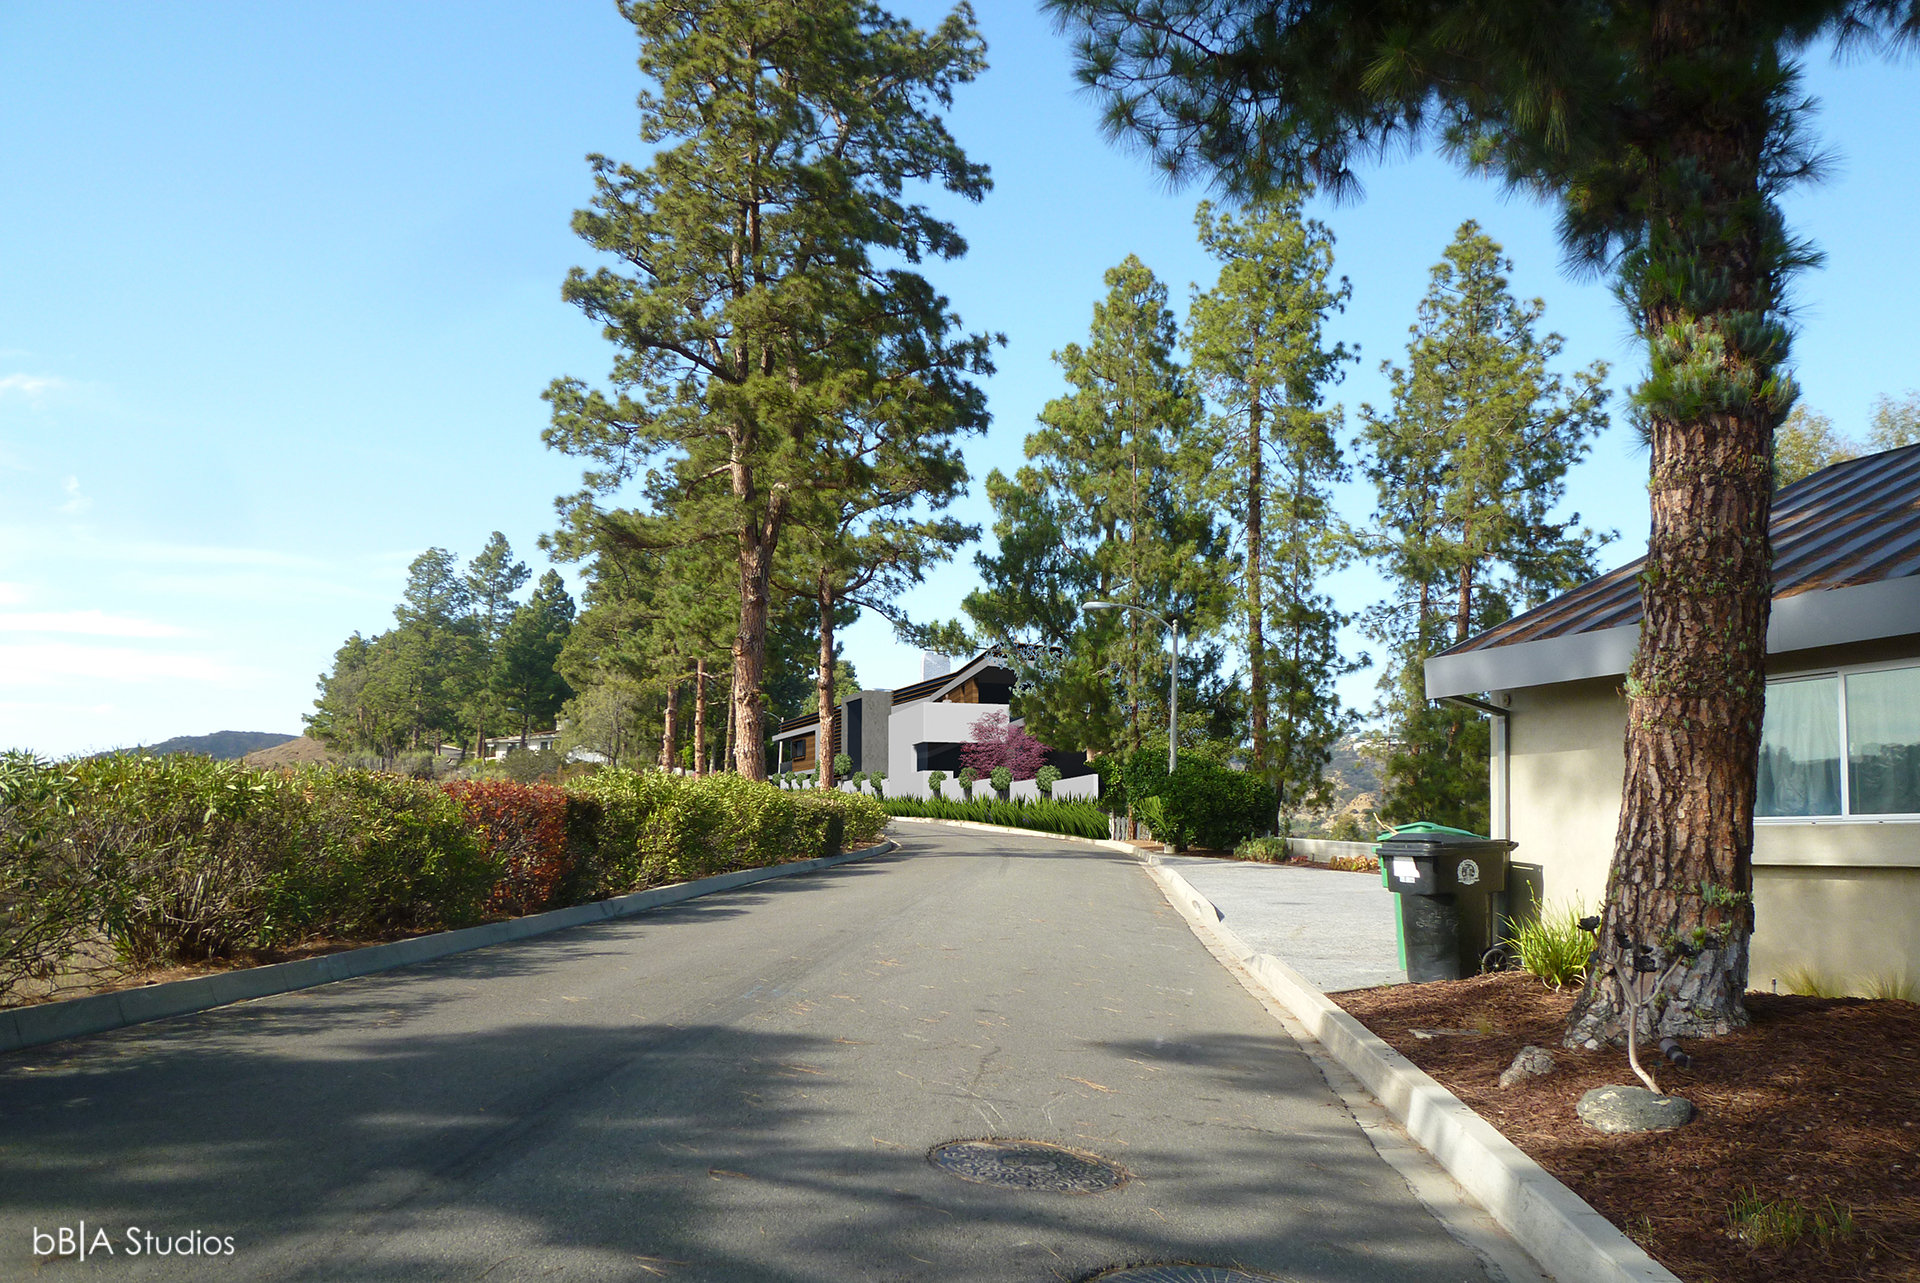 Driveway of modern home on hillside